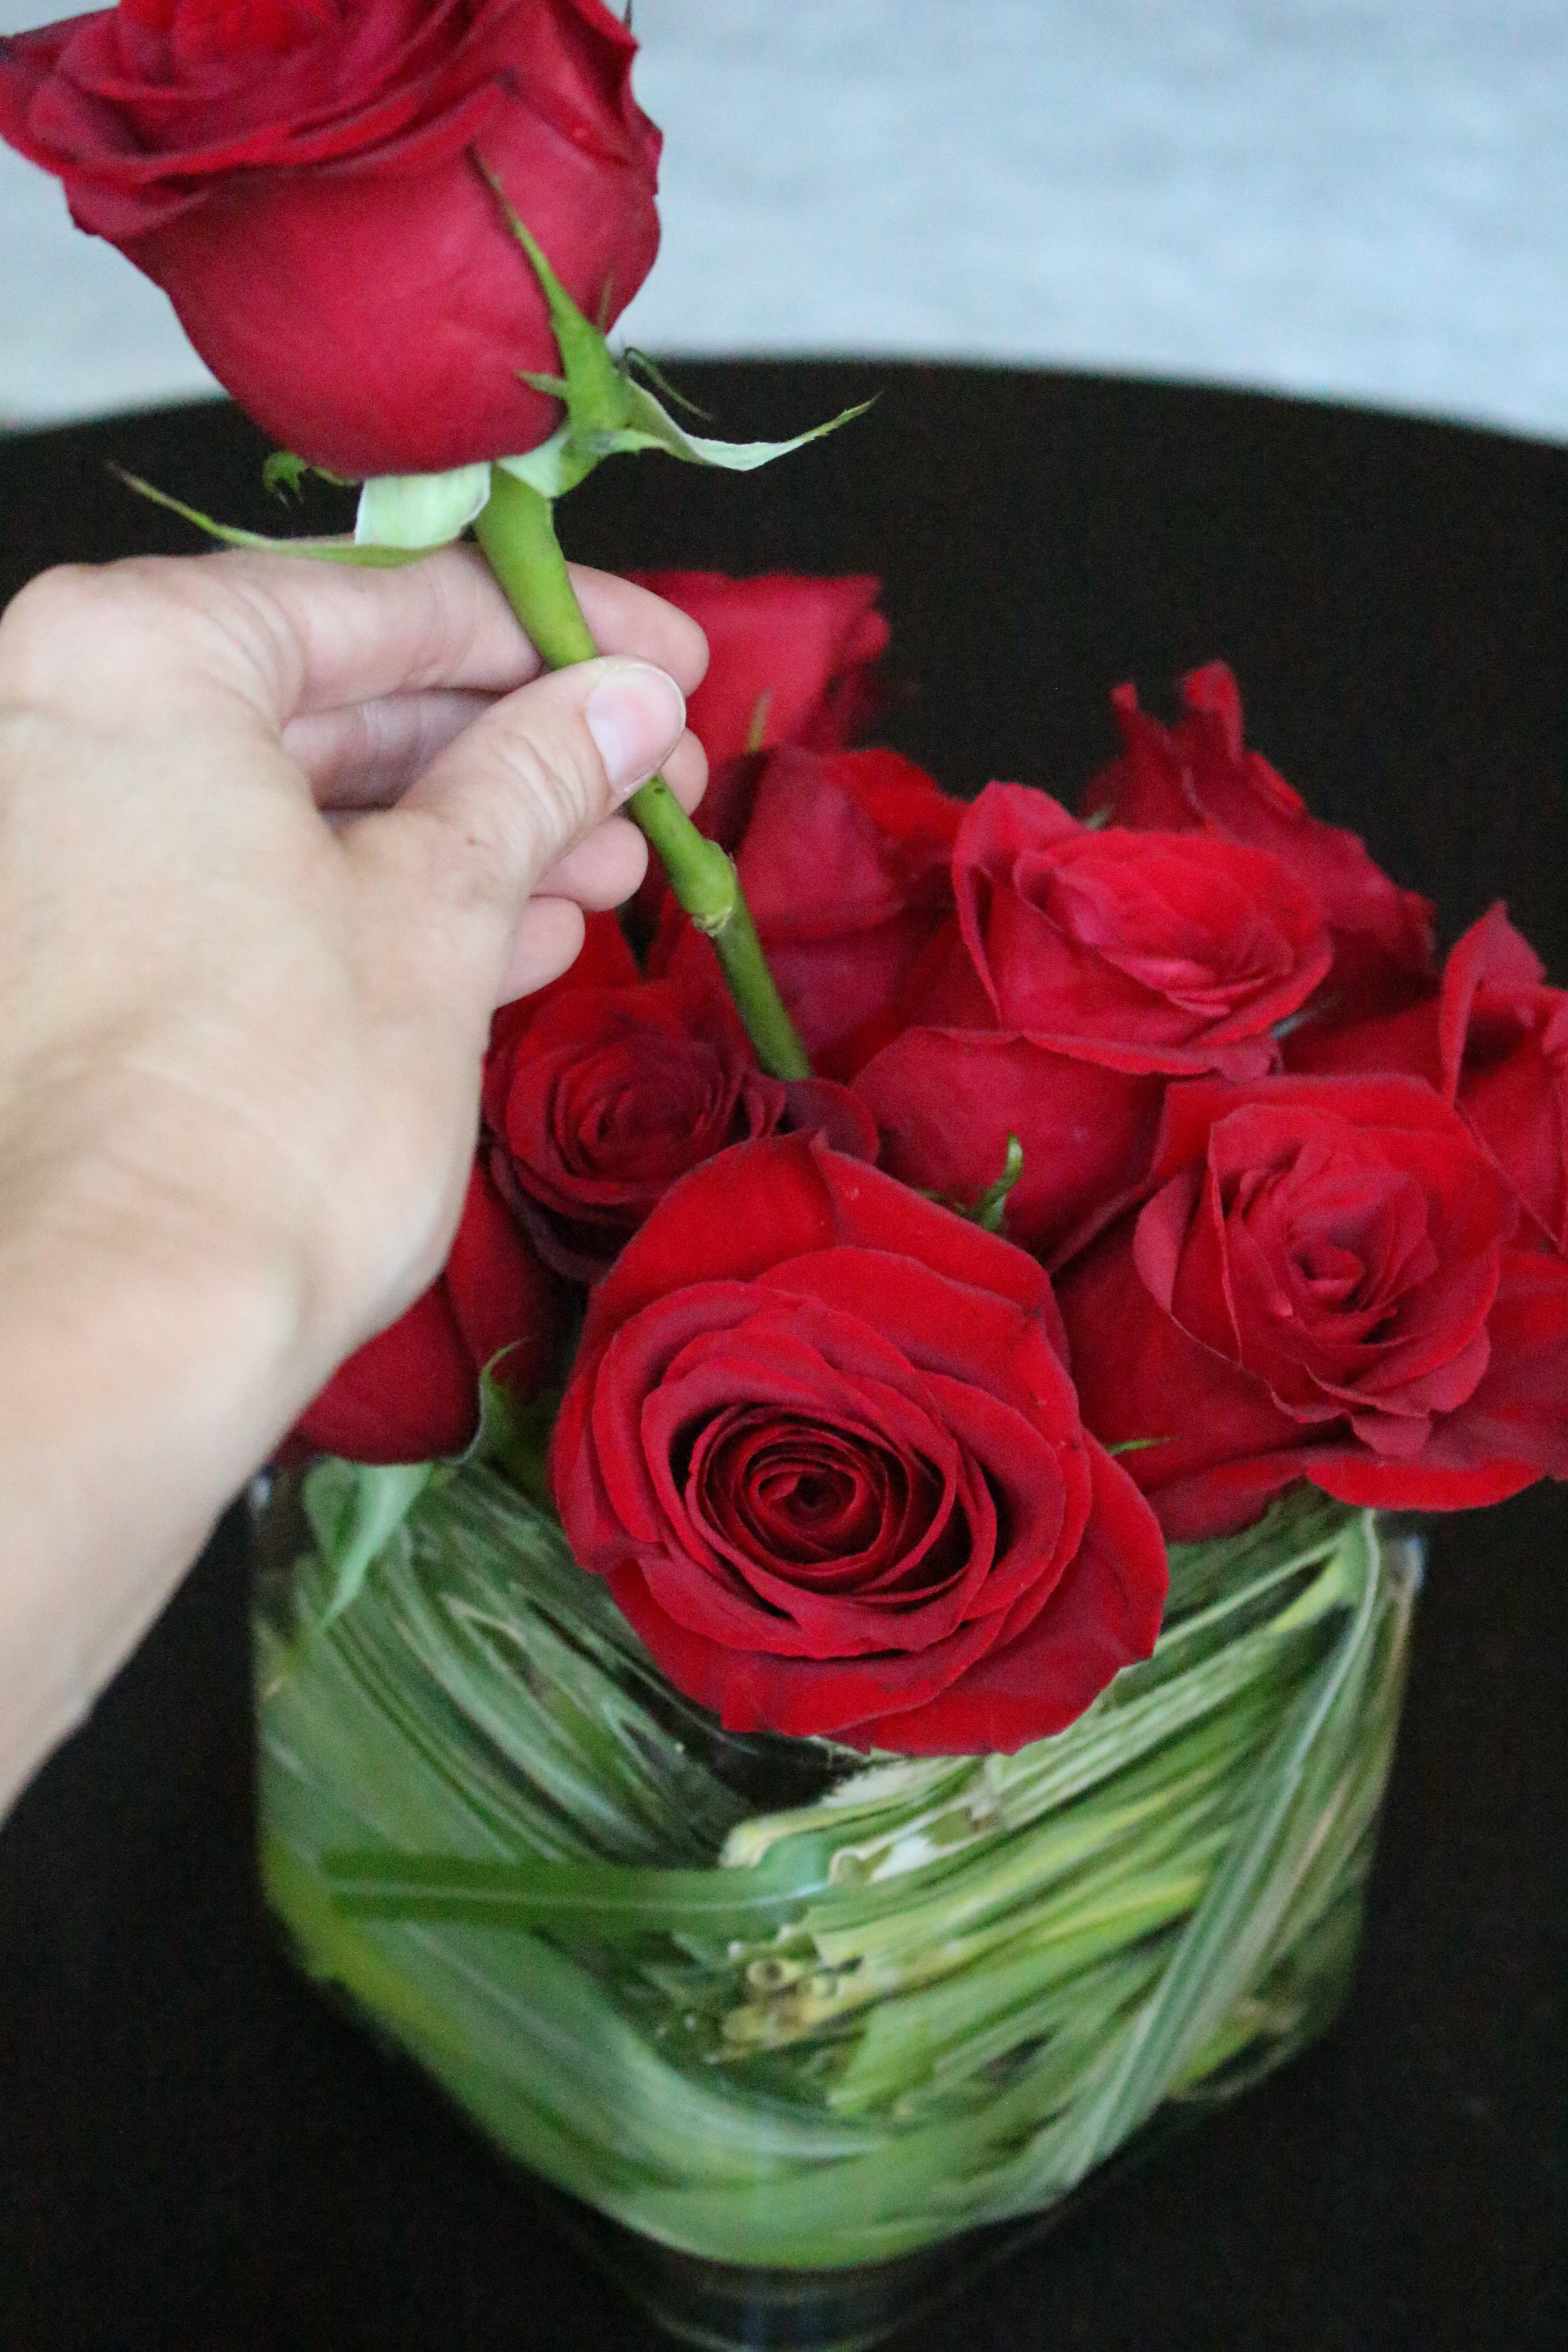 Run for the Roses Flower Arrangement | red roses | flower arranging | rose arrangement | simple flower arranging | hand bouquet | using grocery store bouquets